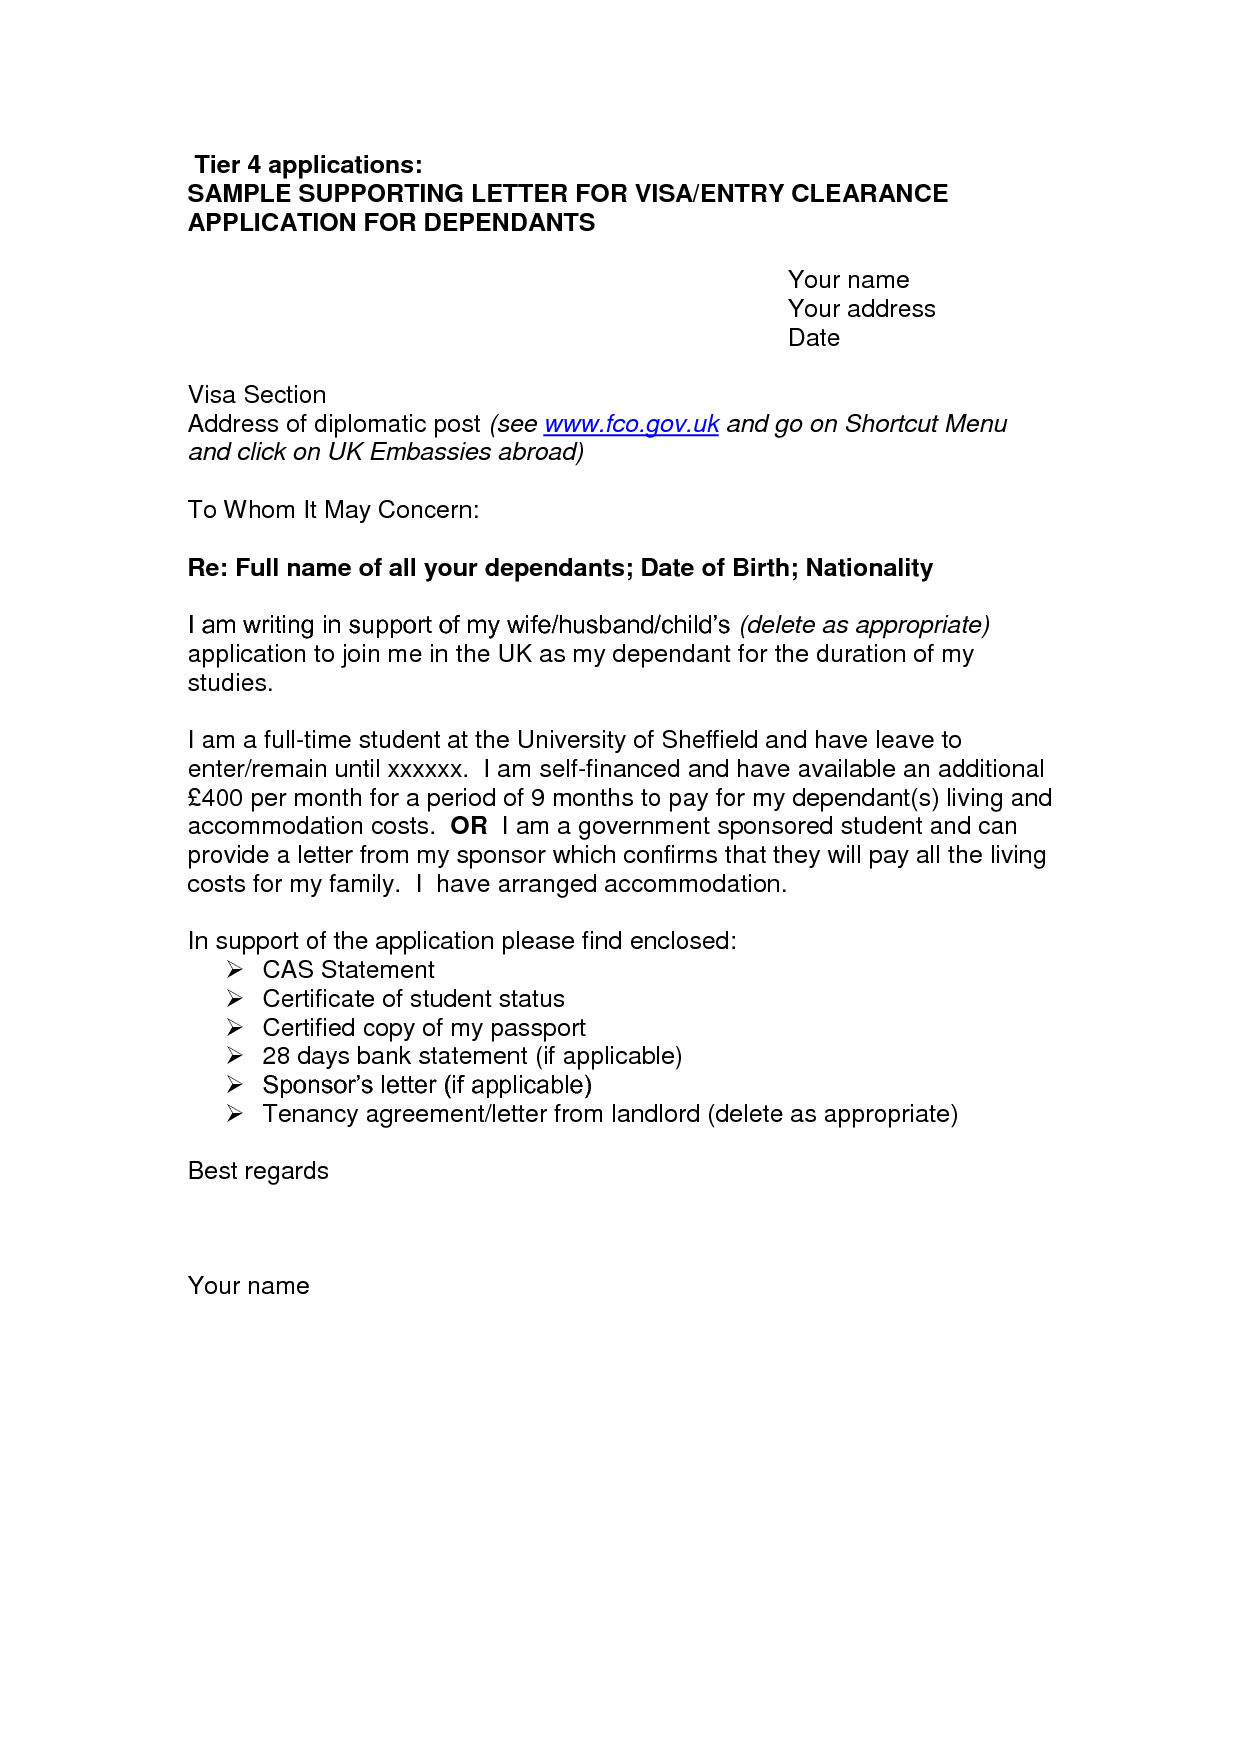 Resume Cover Letter Template Cover Letter Sample For Uk Visa Application Free Online Resumevisa